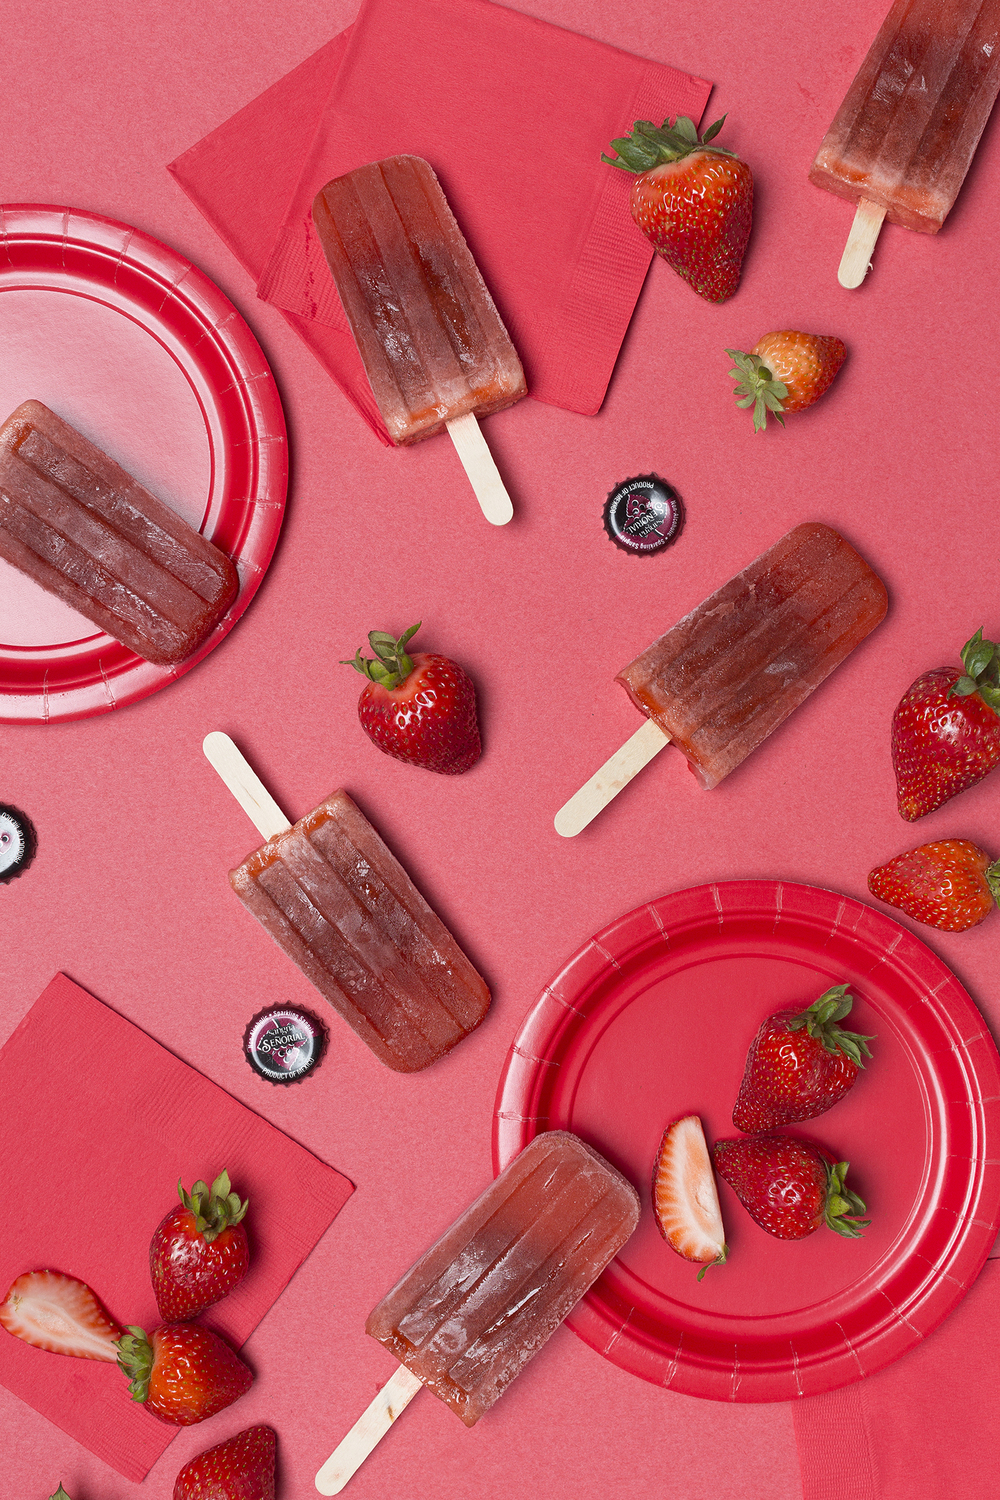 Strawberry Sangria Popsicles! This idea randomly came to me the other day... And I wasn't sure how it was going to turn out. 😁 I think you'll really like them! I was super surprised! My husband loves them too... And that's saying something as he's not the huge fan of fruit puréed popsicles. He's more of a frozen apple juice kinda guy. 😄       Strawberry Sangria-   16oz Package hulled Strawberries    2-11oz Sangria Senorial bottles   1/4C sugar       Add all ingredients to a pot, and bring to a boil. Let boil for 2 min, turn heat down and let mixture simmer until strawberries are soft. Let mixture cool. Blend together. After blended, let mixture sit for a few min, the mixture will separate. Stir together with a spoon, then fill molds, freeze, and enjoy!